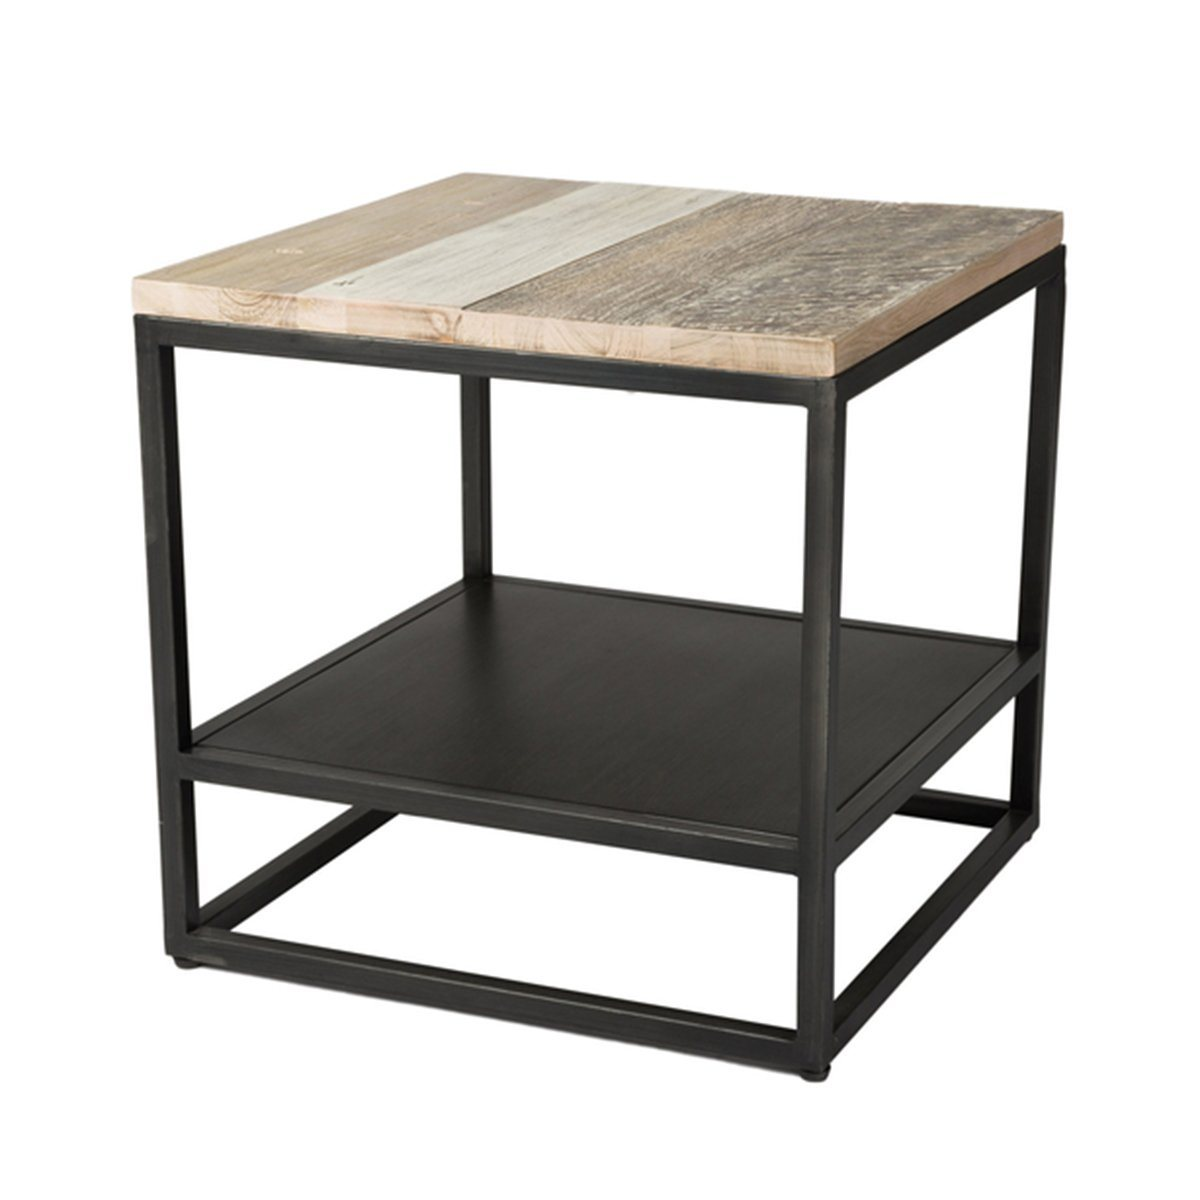 SOLID ACACIA WOOD METRO HAVANA END TABLE - Showhome Furniture